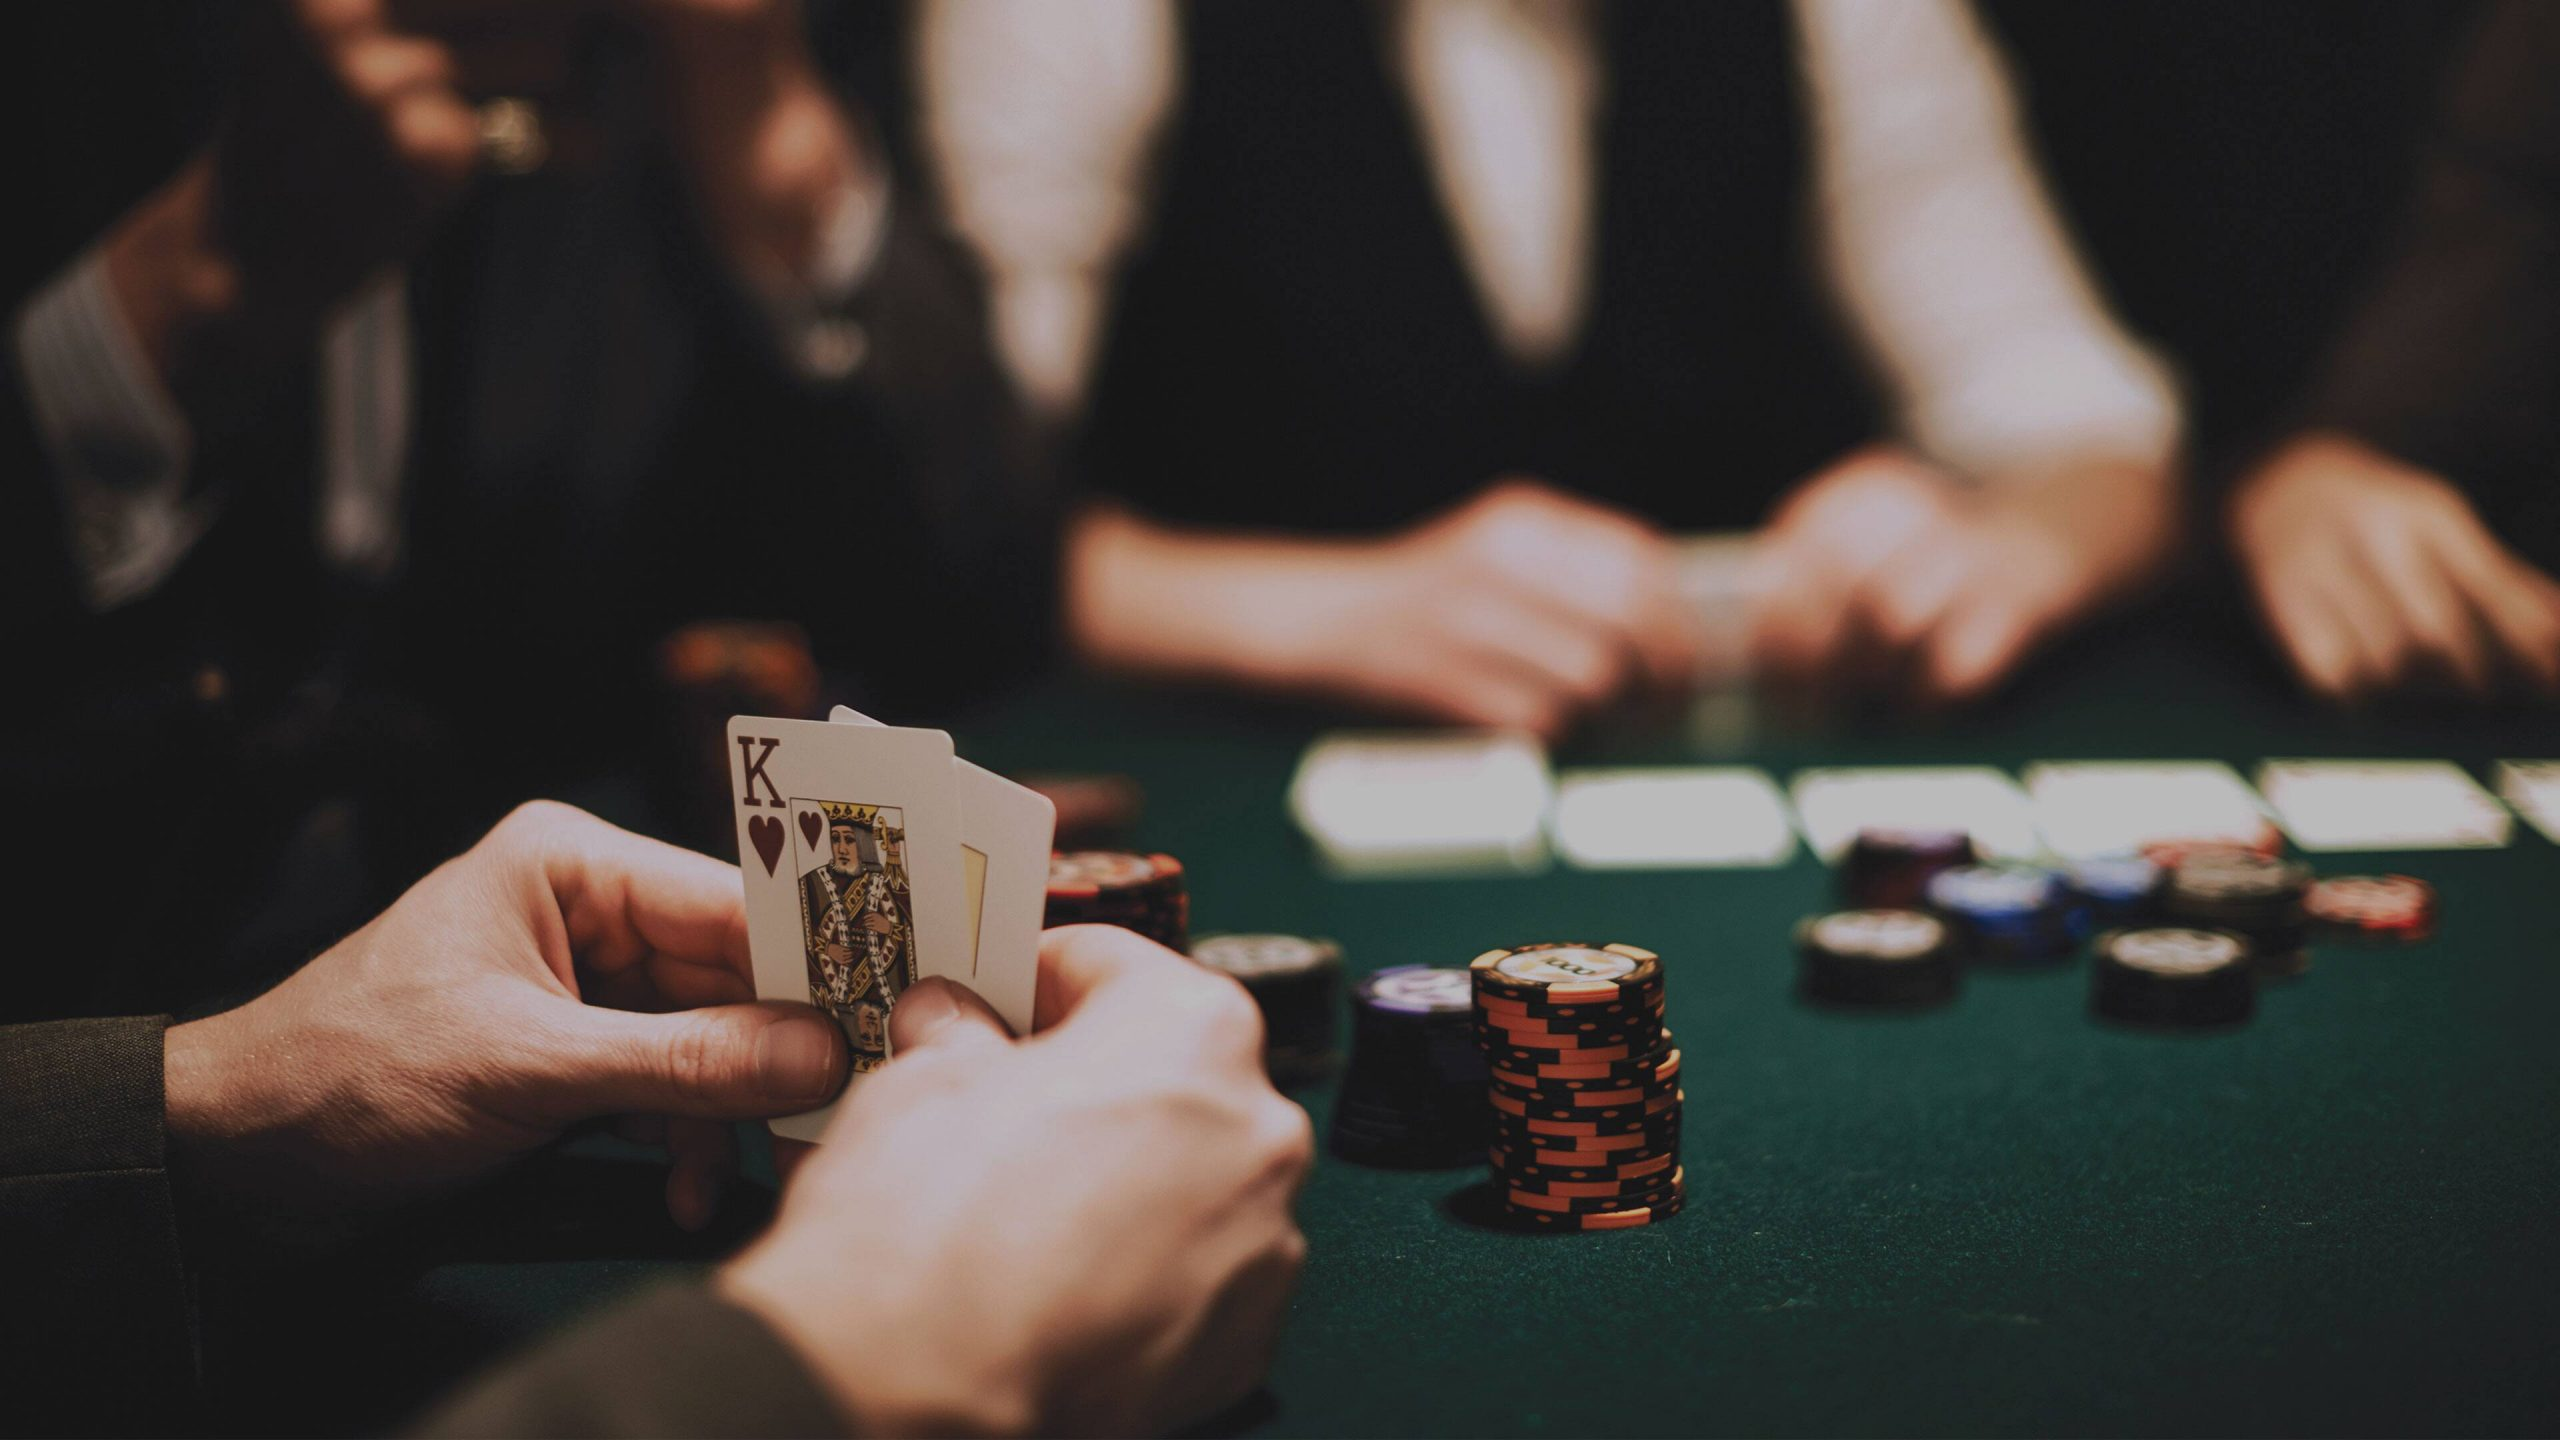 Playing Online Poker Games Can Make You Rich